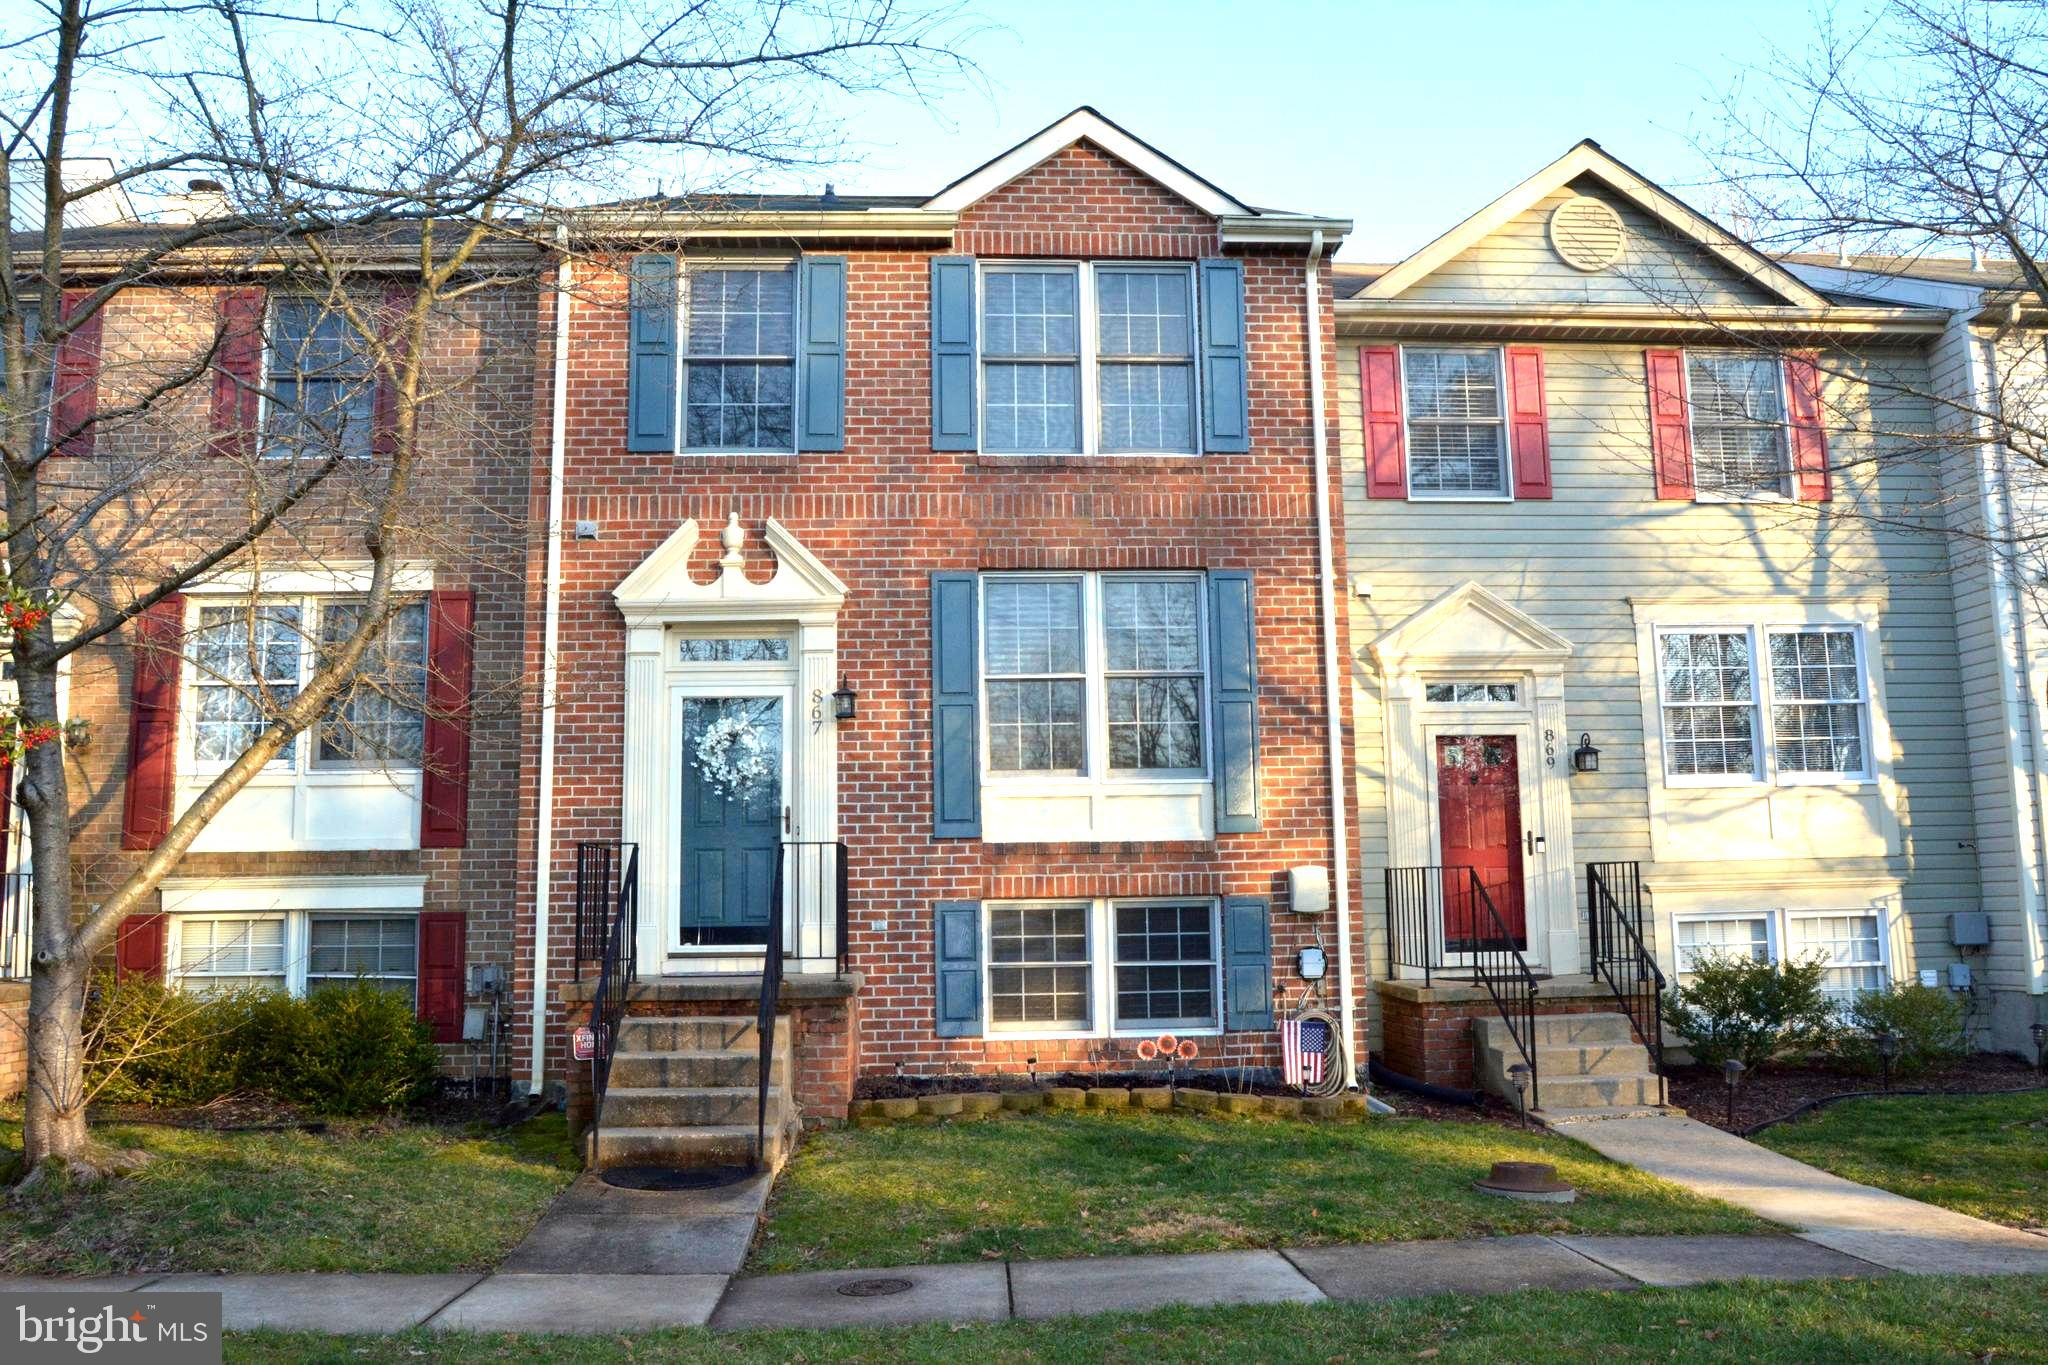 867 CHESTNUTVIEW COURT, CHESTNUT HILL COVE, MD 21226